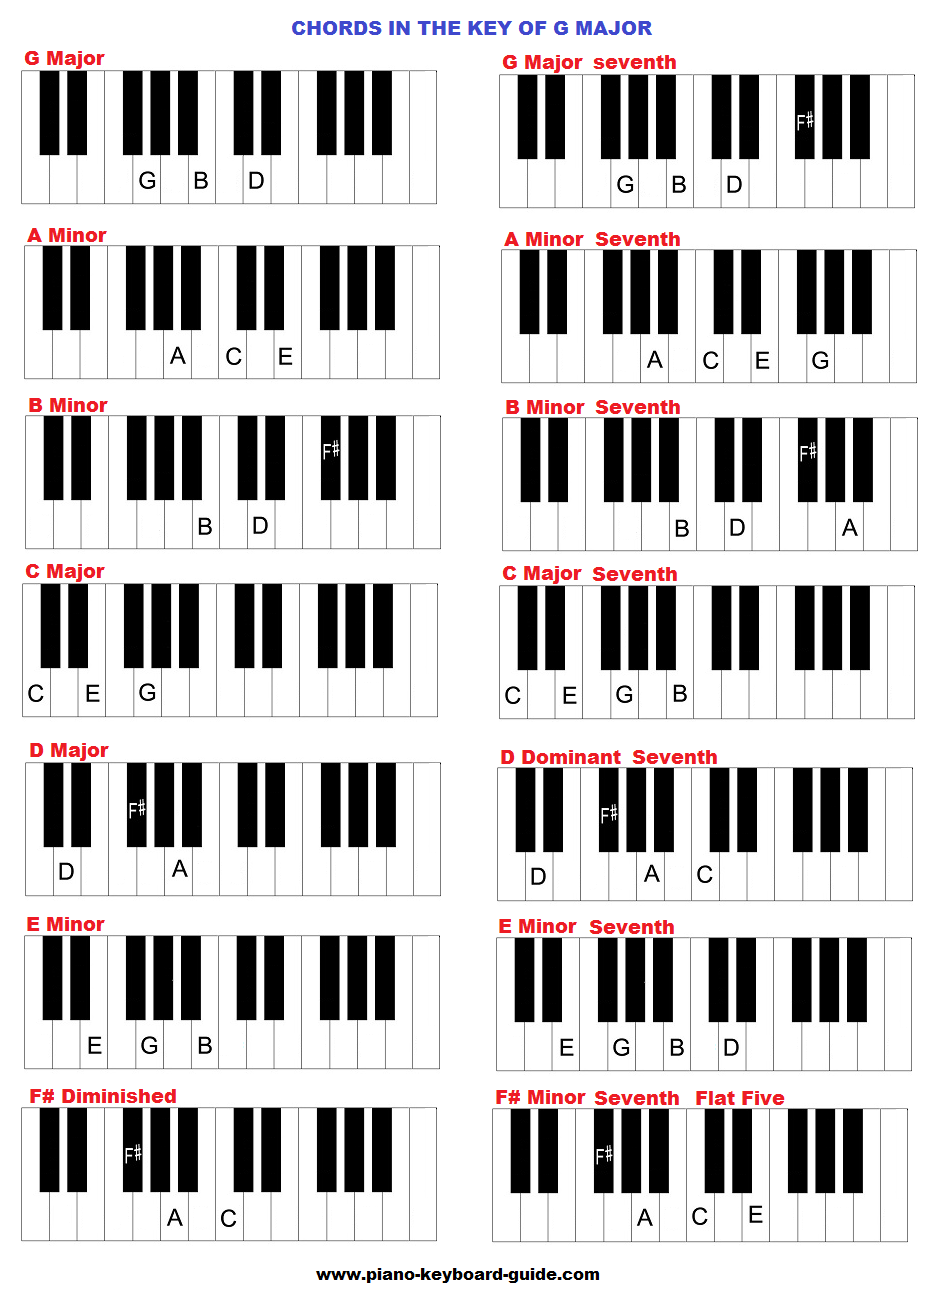 The key of G major, chords